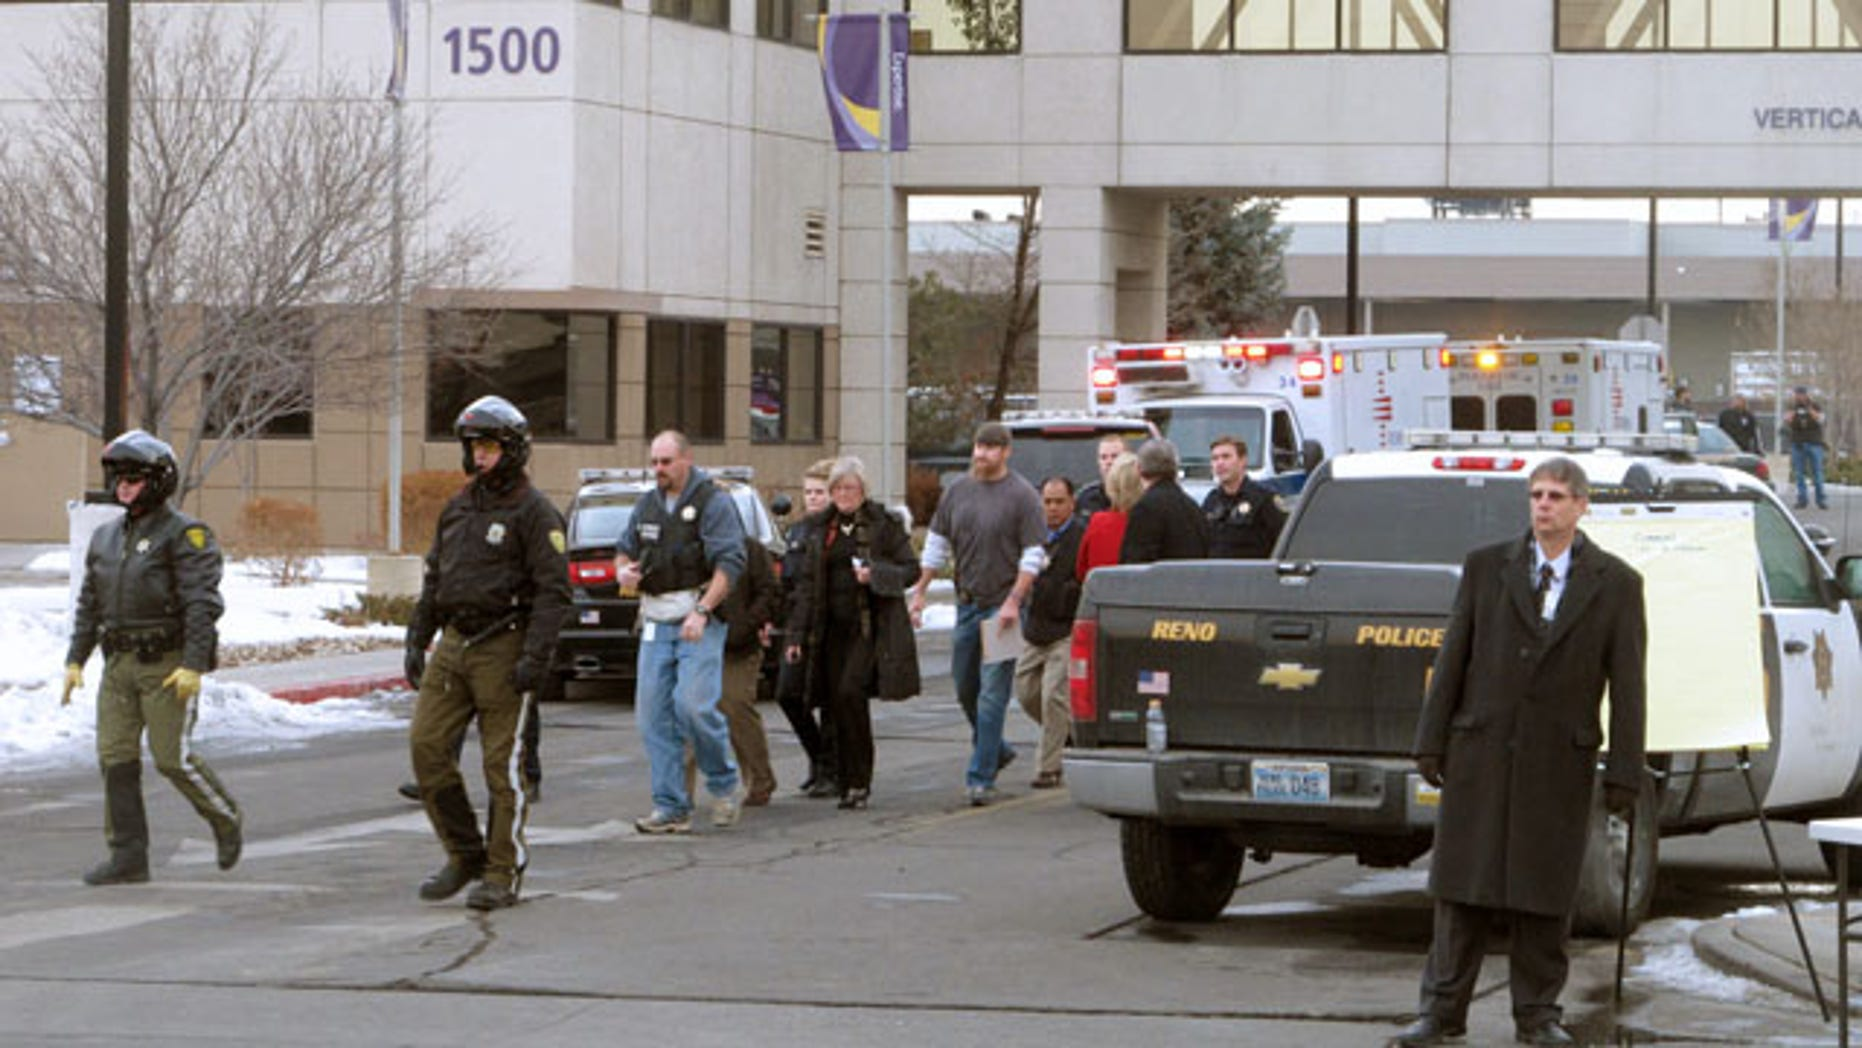 December 17 2013 Police Escort Hospital Staff Members And Others Away From A Medical